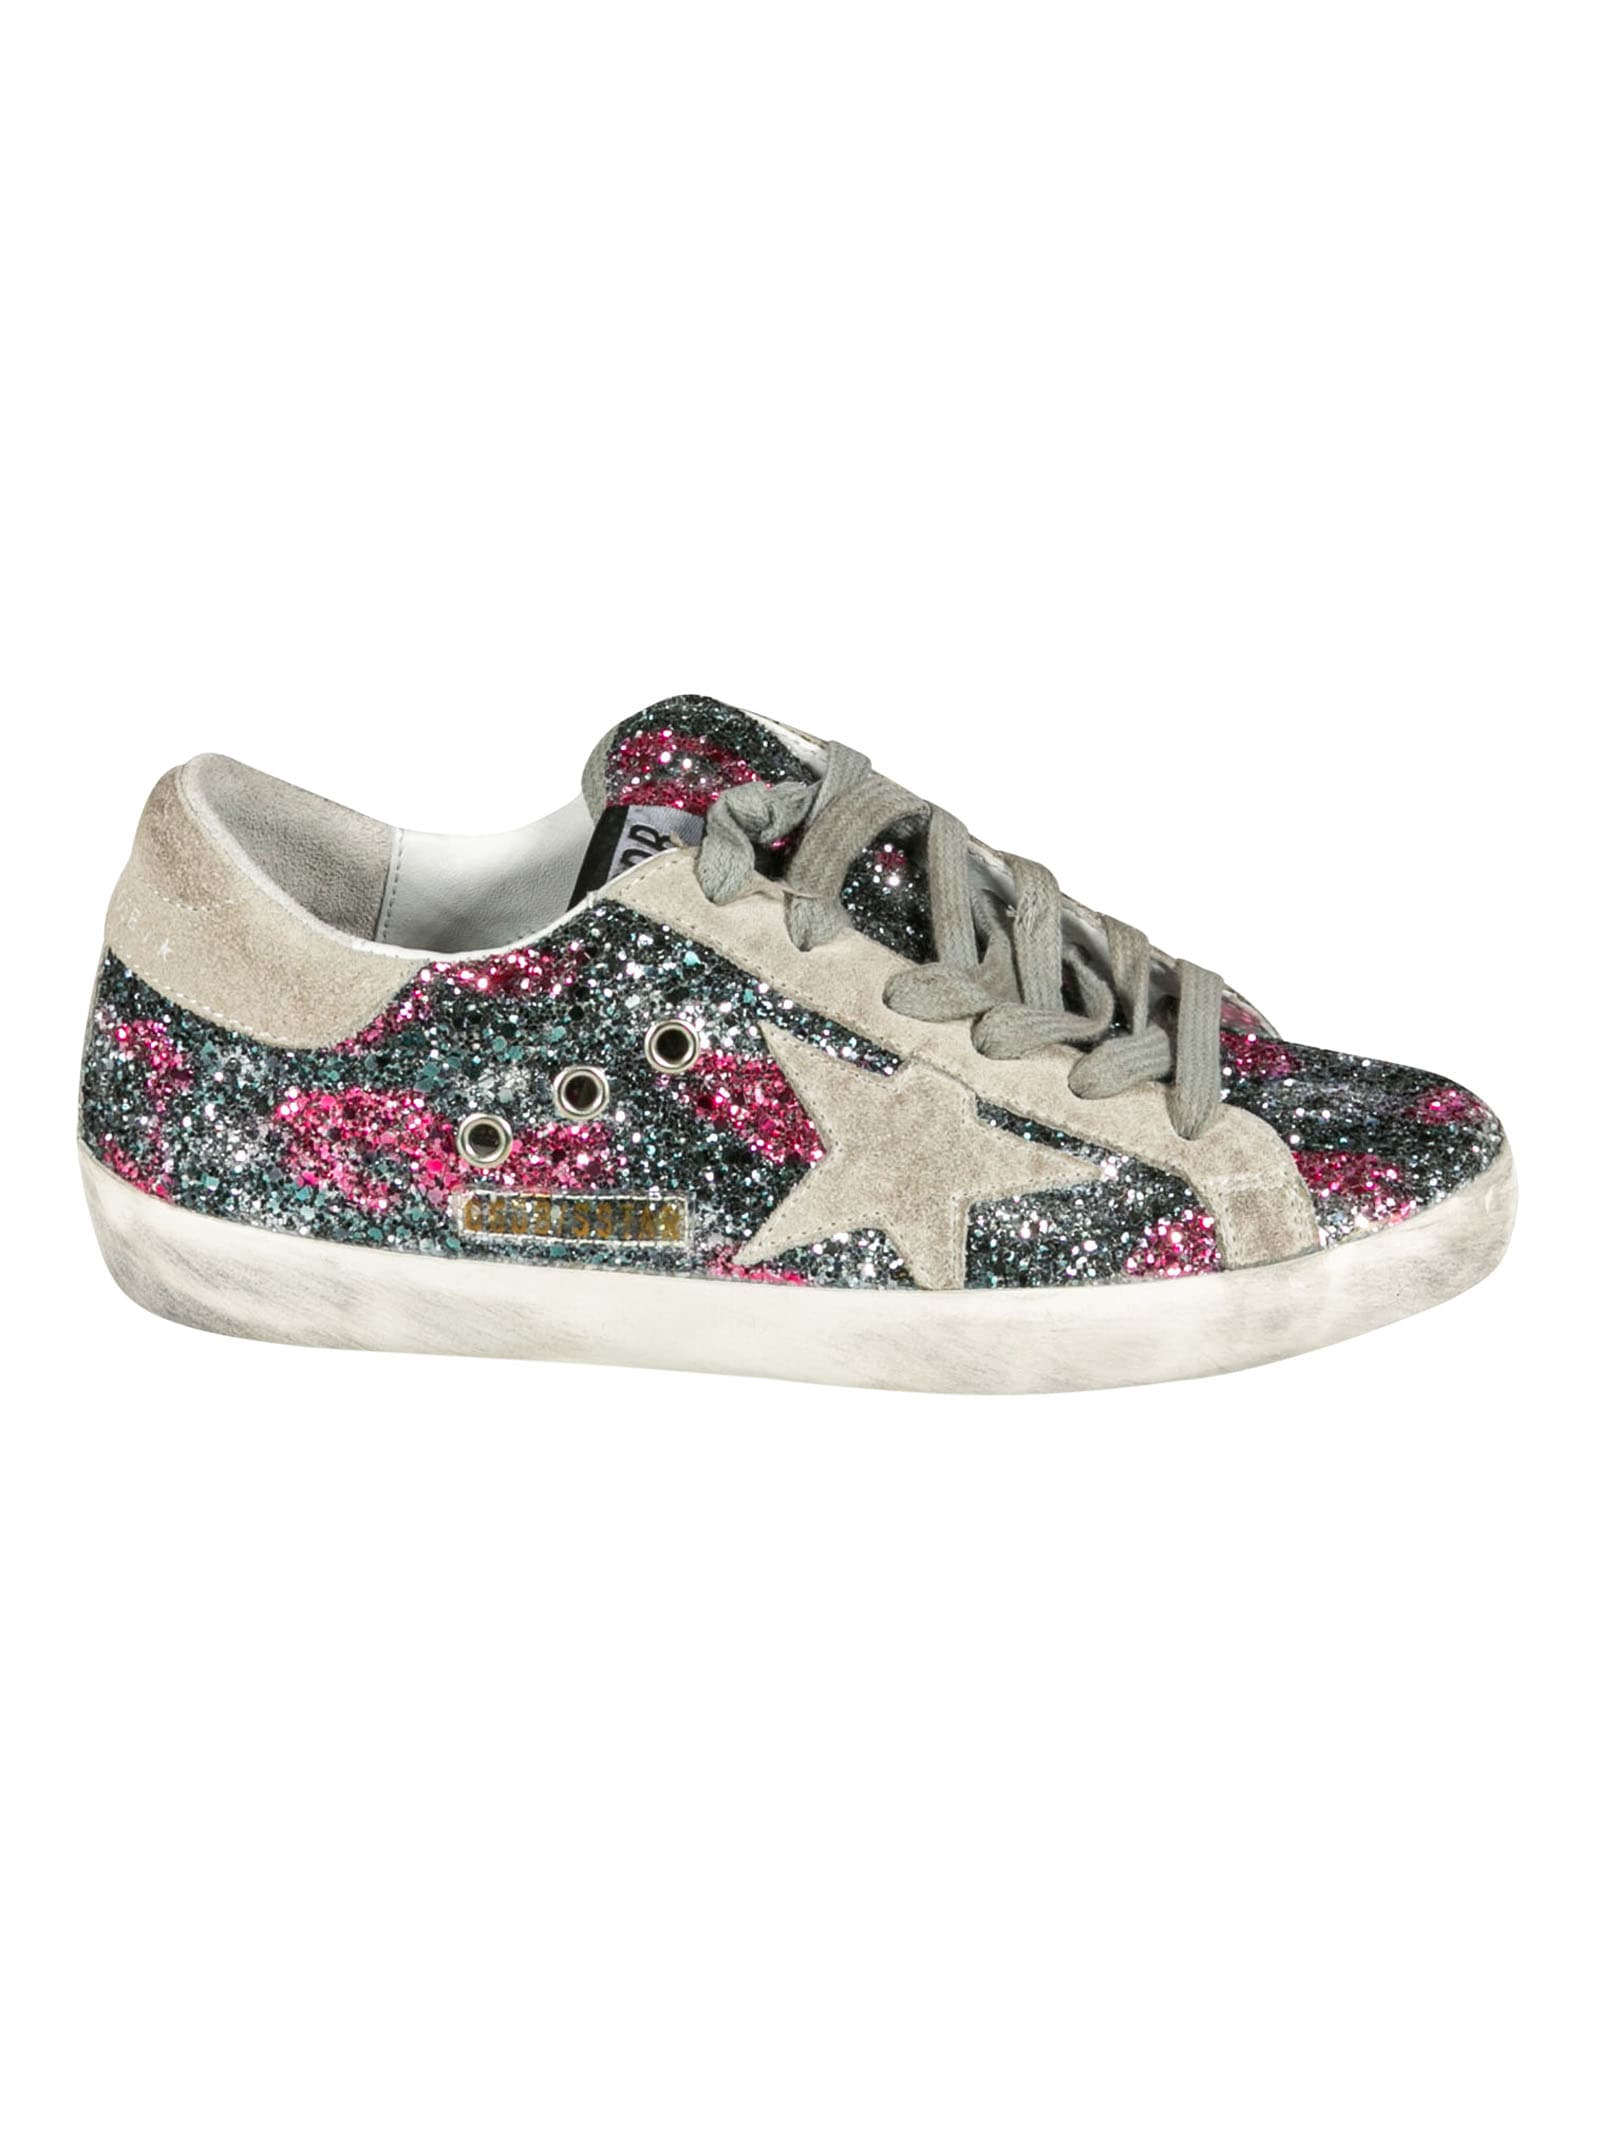 Buy Golden Goose Super-star Classic Sneakers online, shop Golden Goose shoes with free shipping